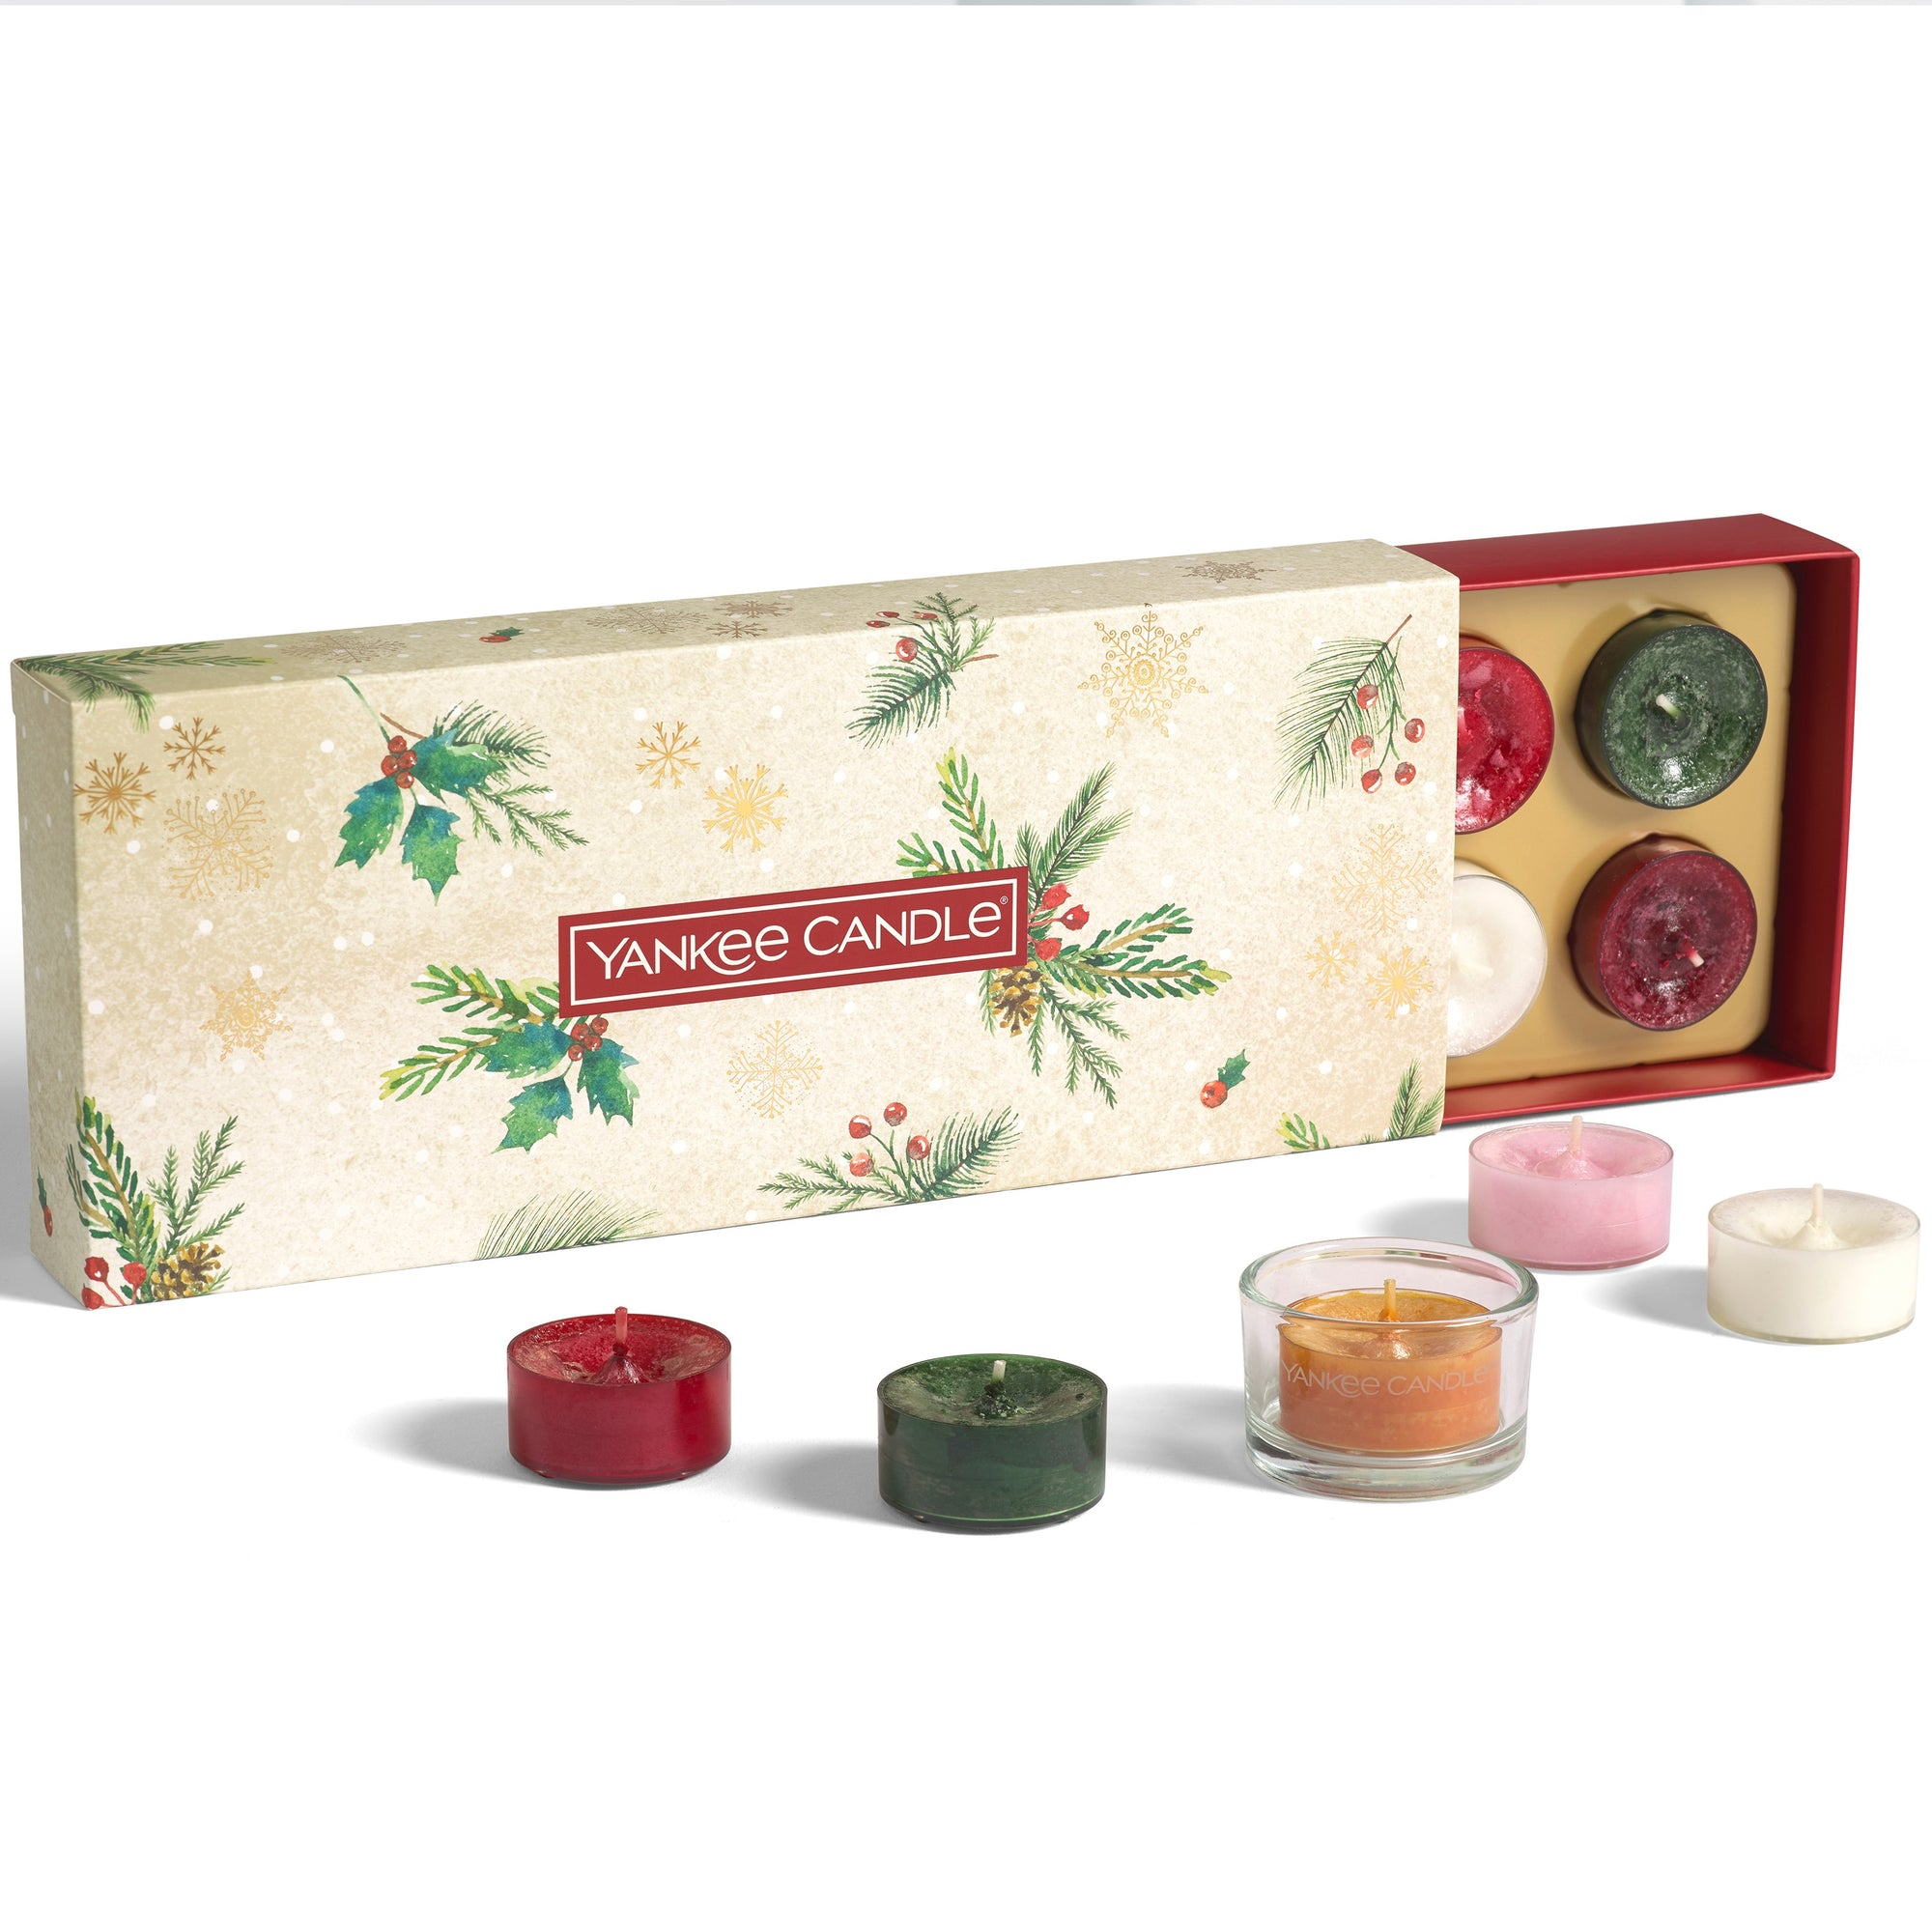 Yankee Candle - 10 Tea Lights, 1 Holder Gift Set